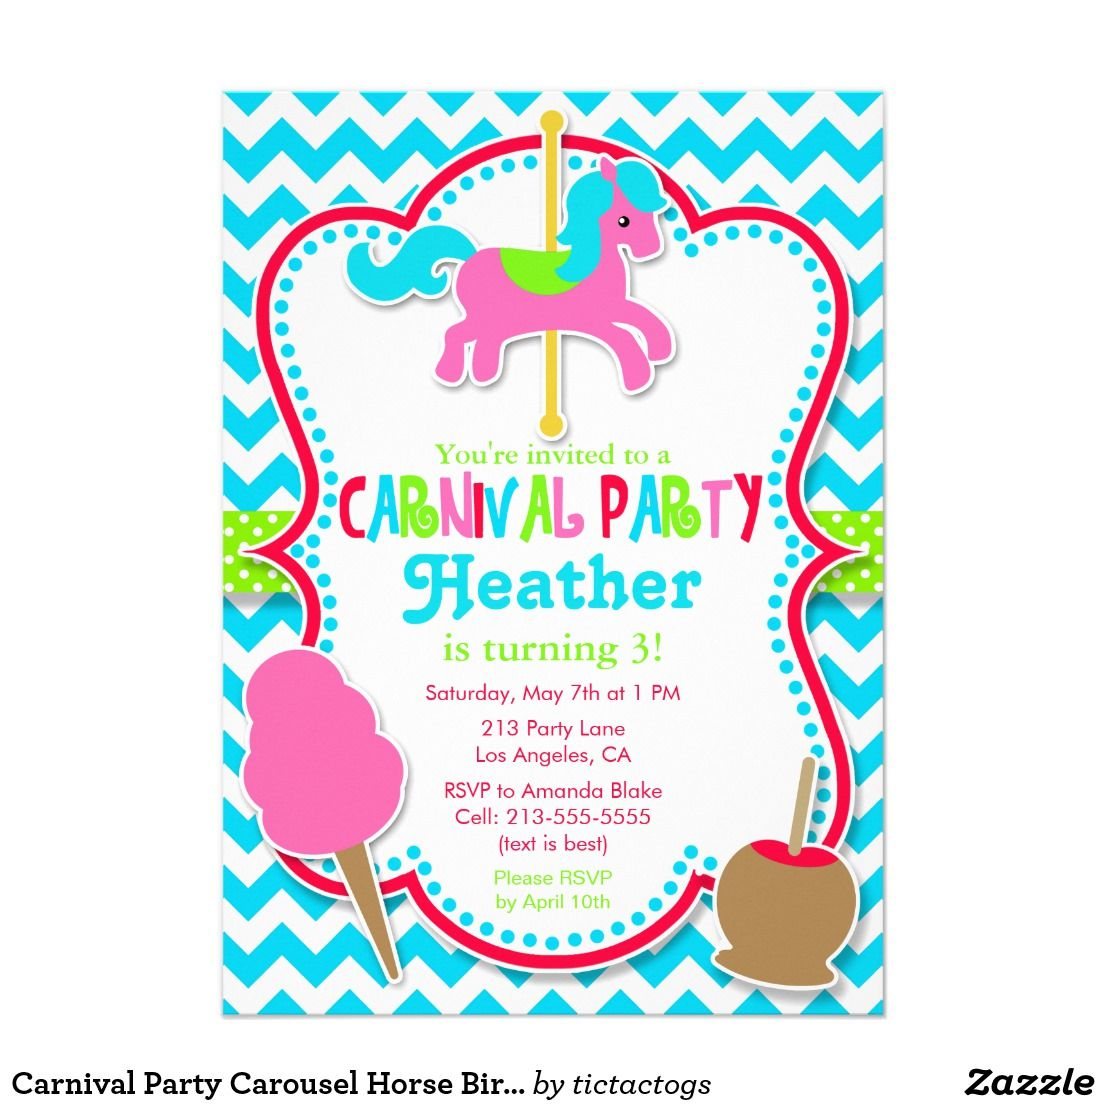 Carnival Party Carousel Horse Birthday Invitation | Pinterest ...